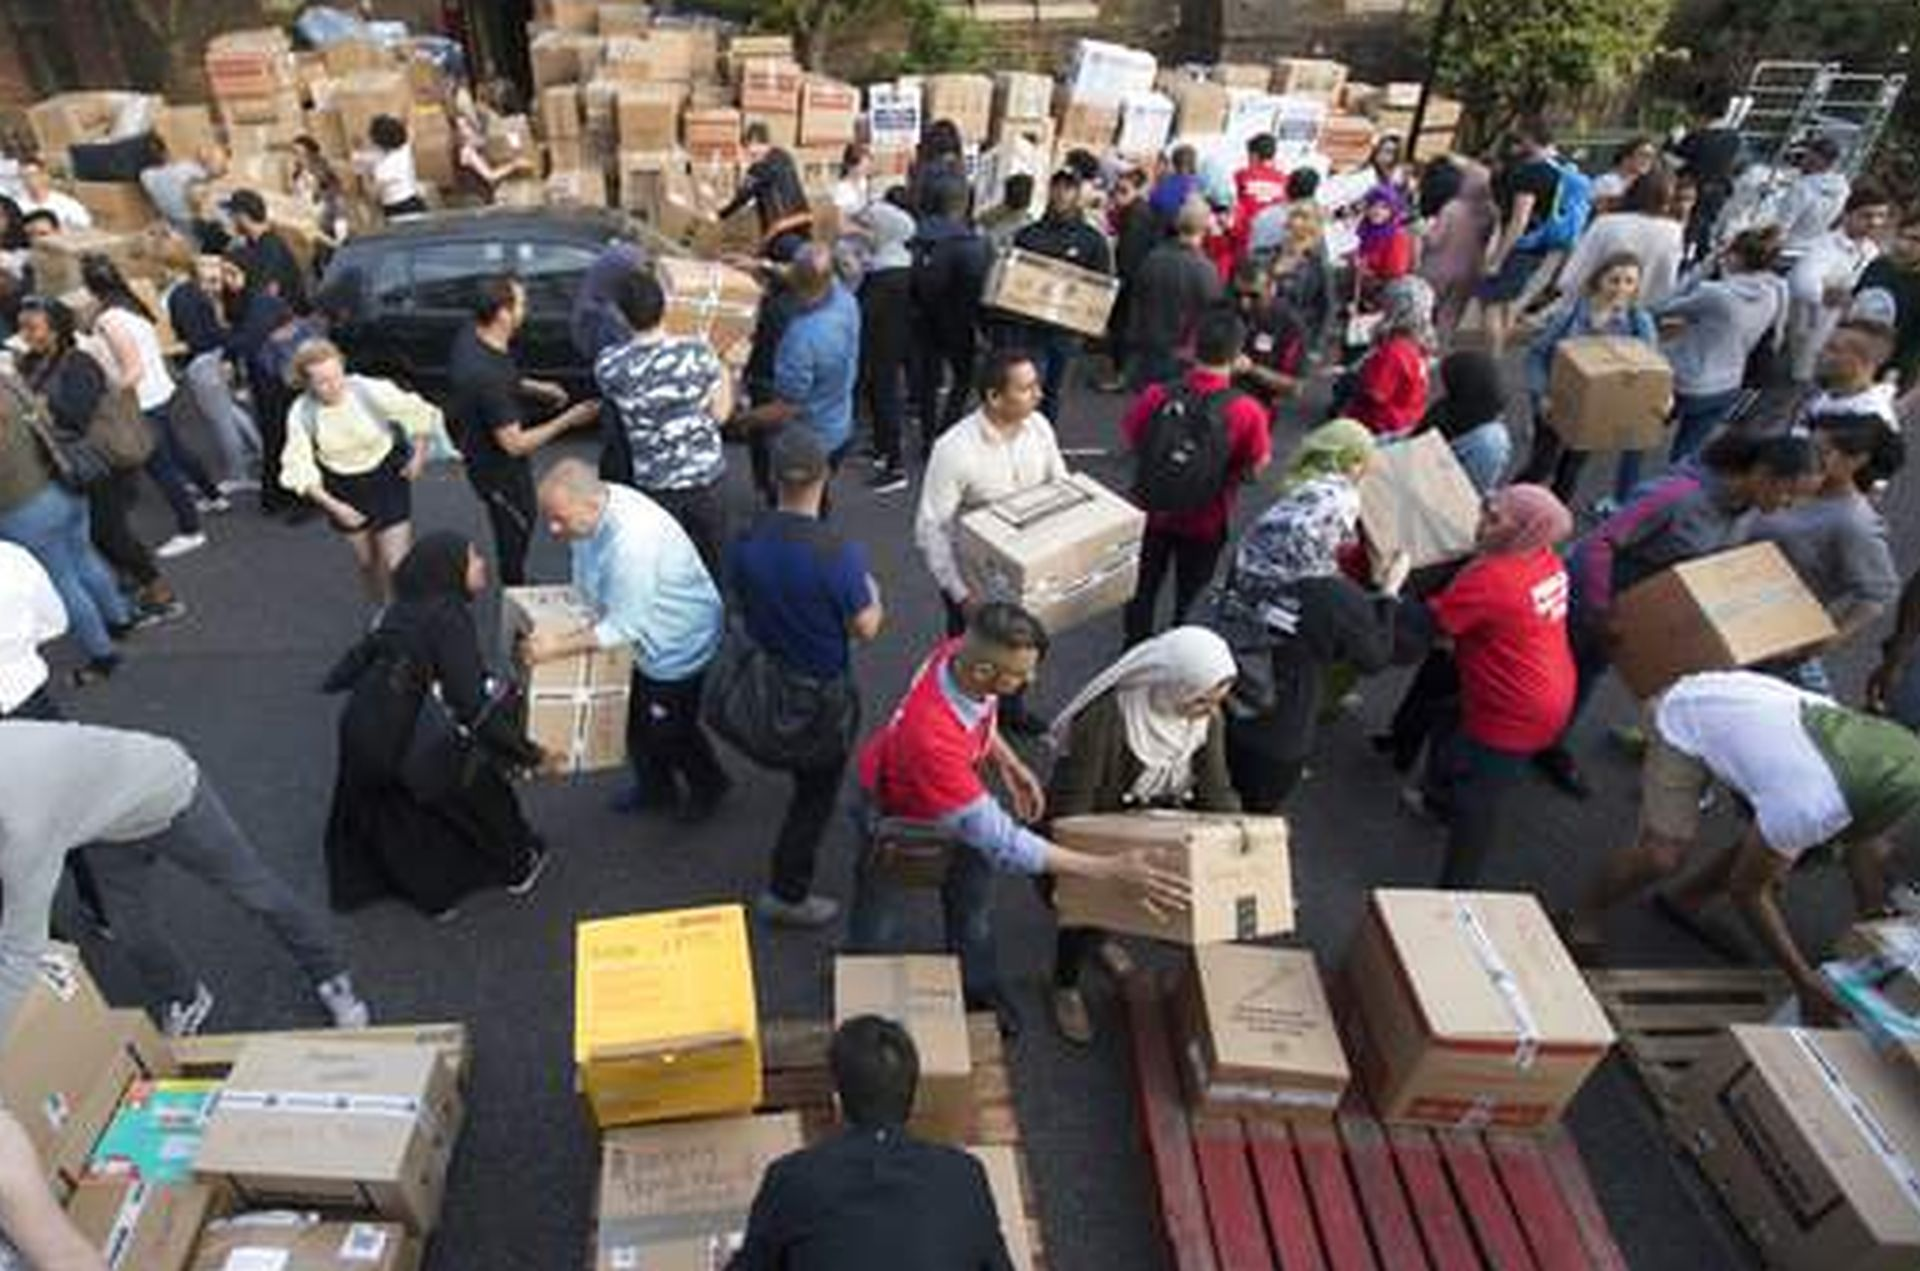 Voluneers organize donations near Grenfell Tower in west London, Thursday, June 15, 2017. A massive fire raced through the 24-storey high-rise apartment building in west London early Wednesday, and London fire commissioner says it will take weeks for the building to be searched and 'cleared'. (AP Photo/Tim Ireland)